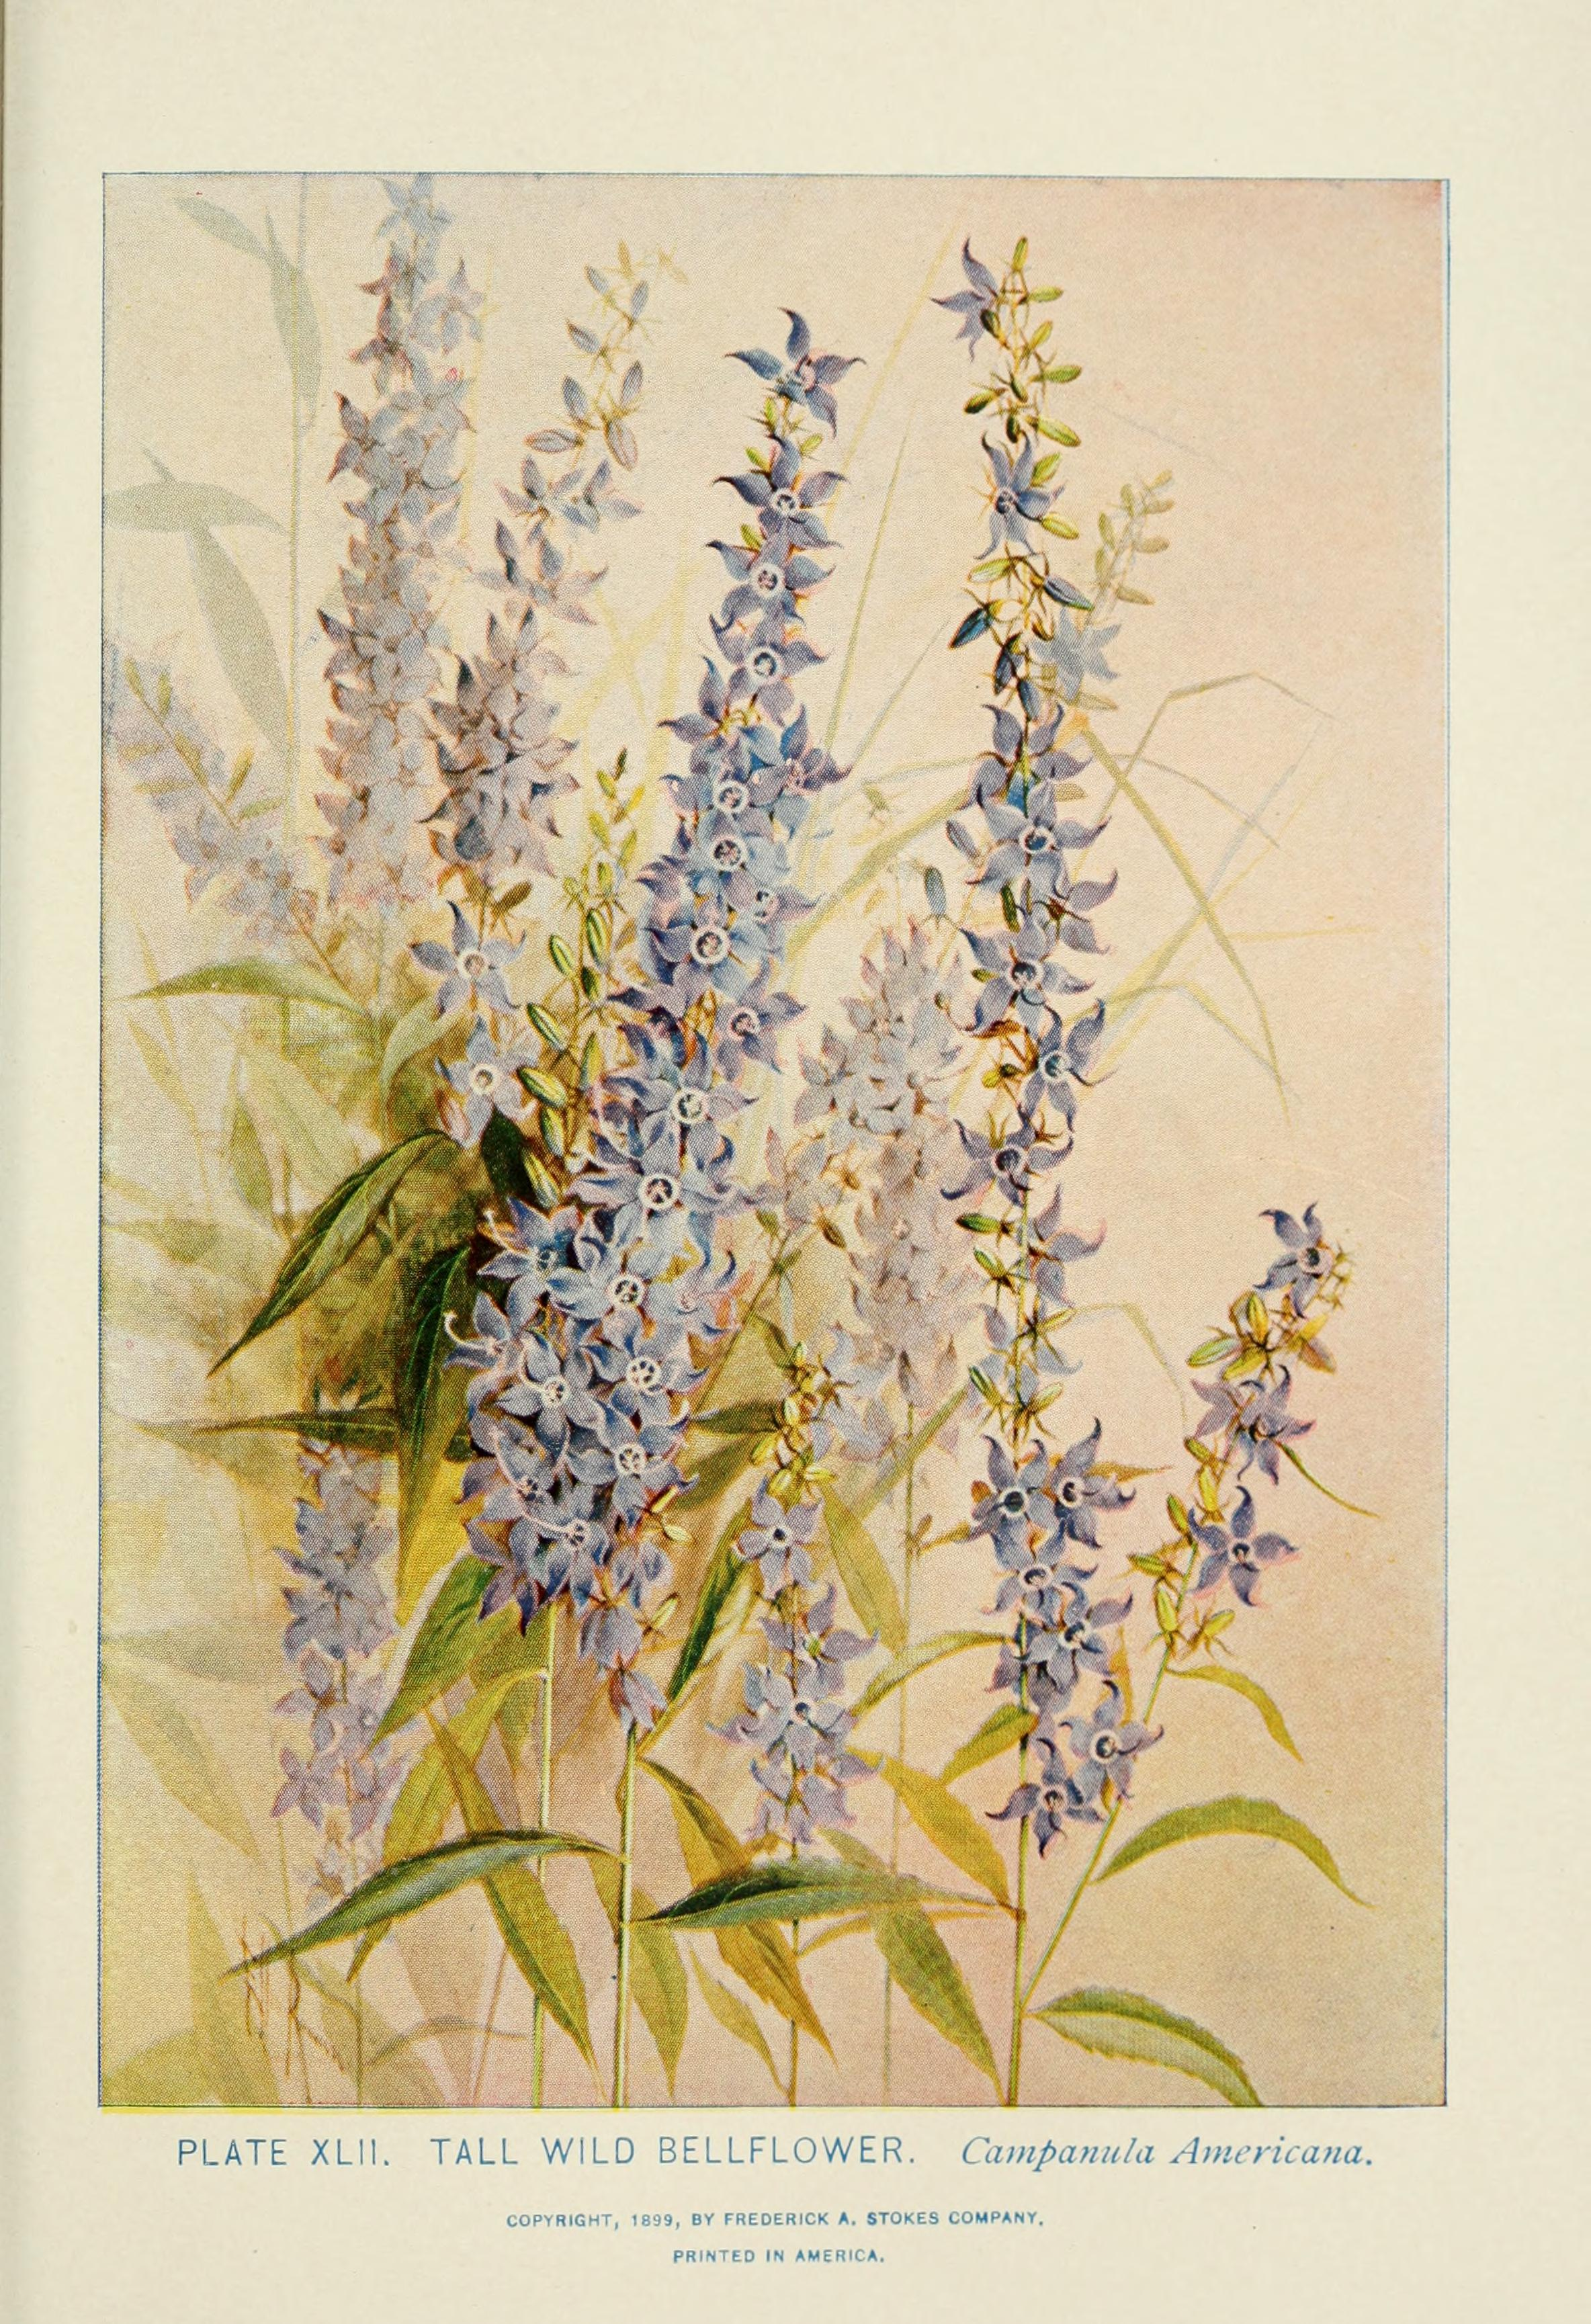 American Bellflower illustration by Alice Lounsberry circa 1899.